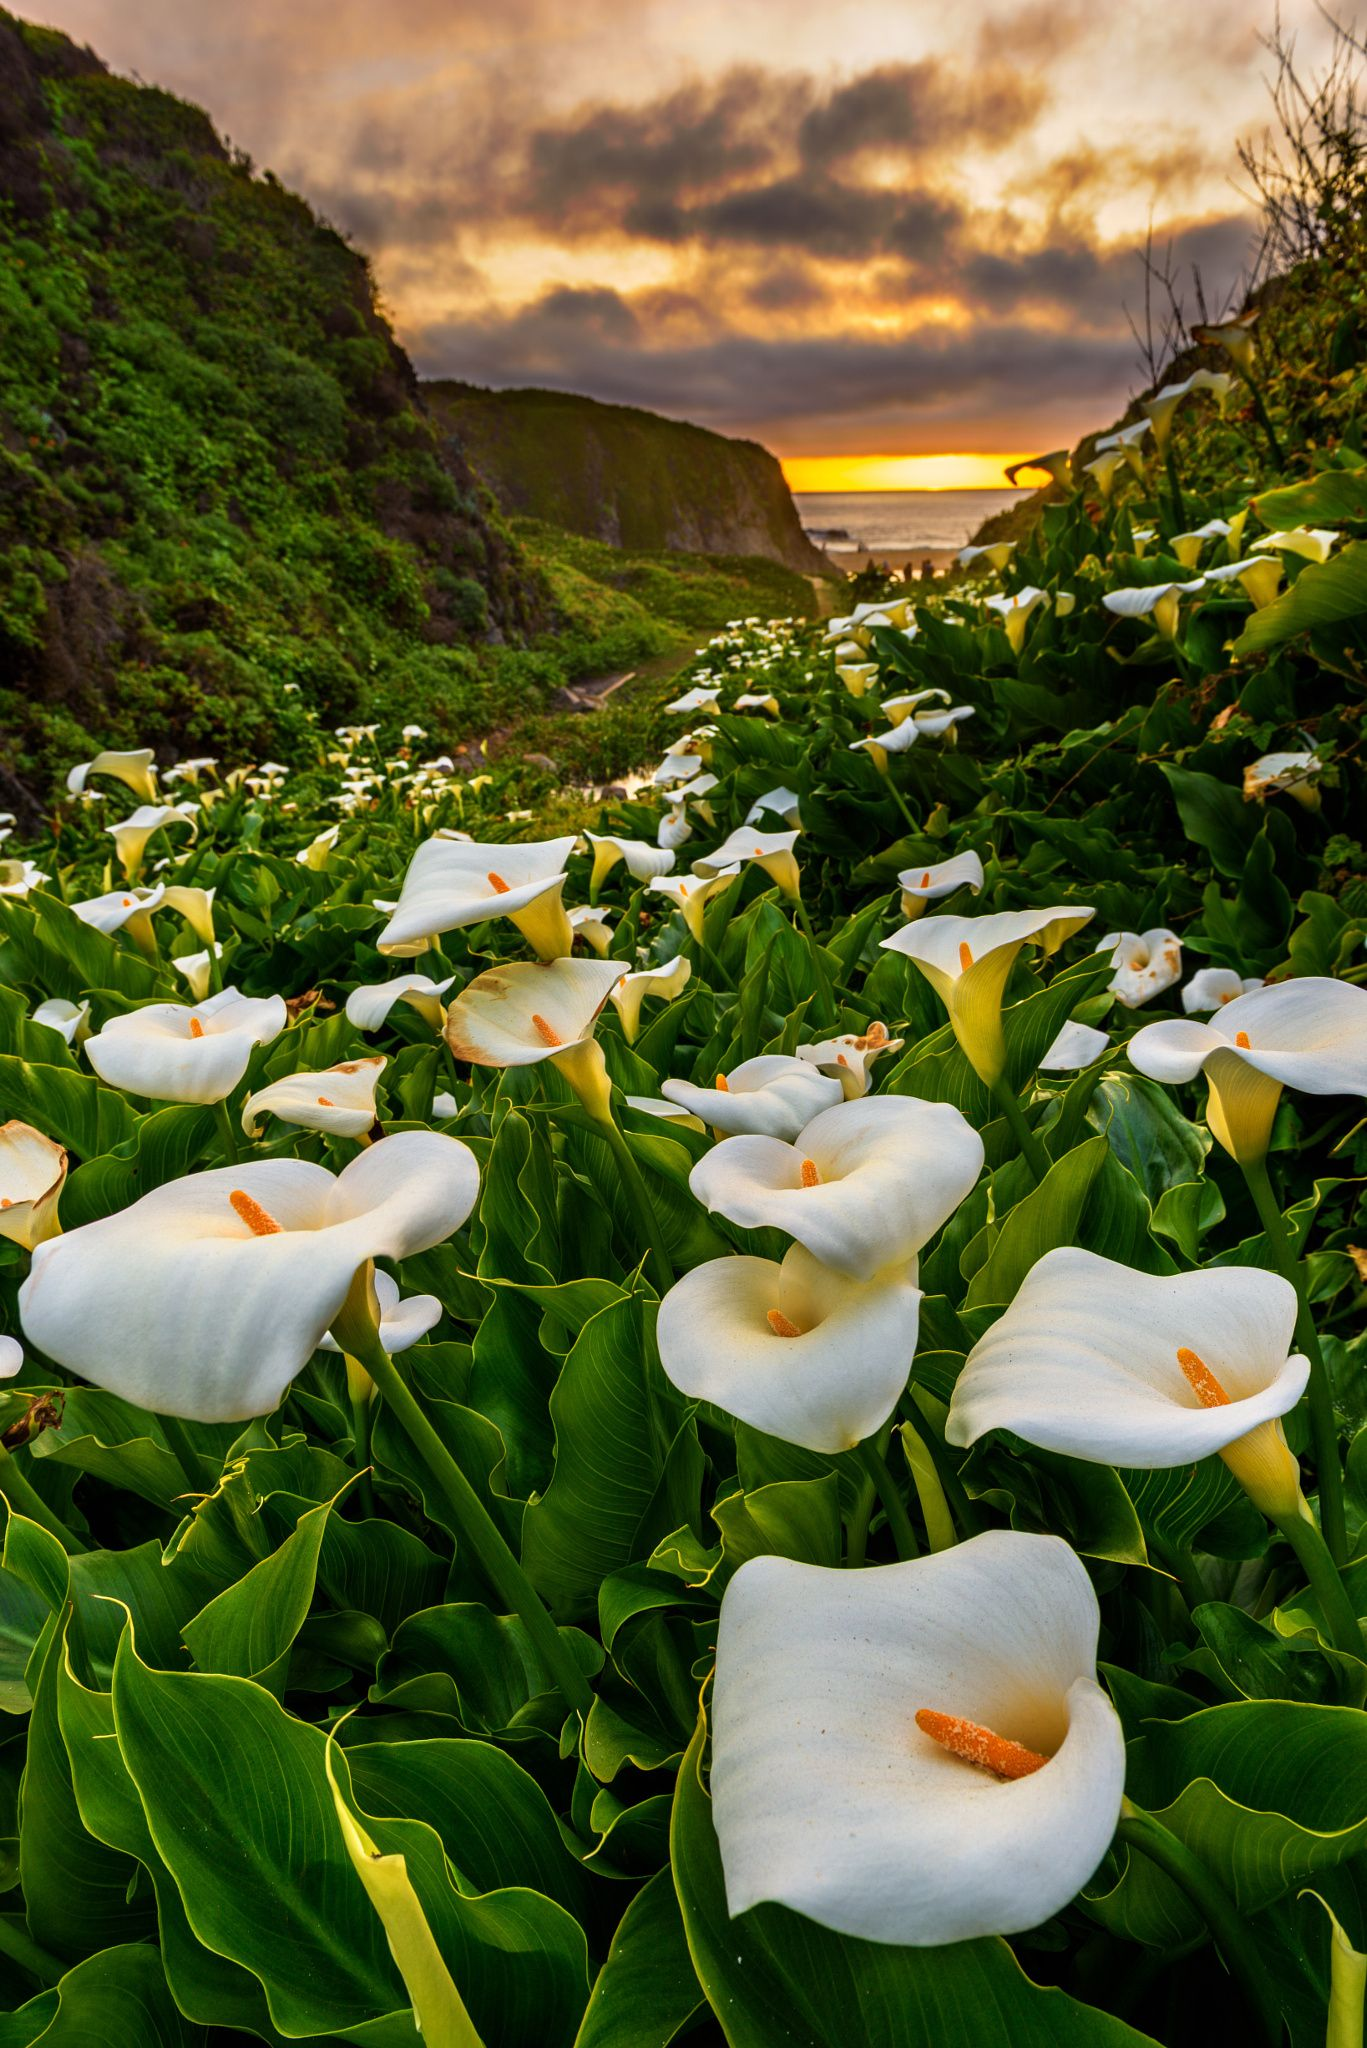 Sunset at Calla Lily Valley | Calla lily, Lilly plants, Beautiful nature